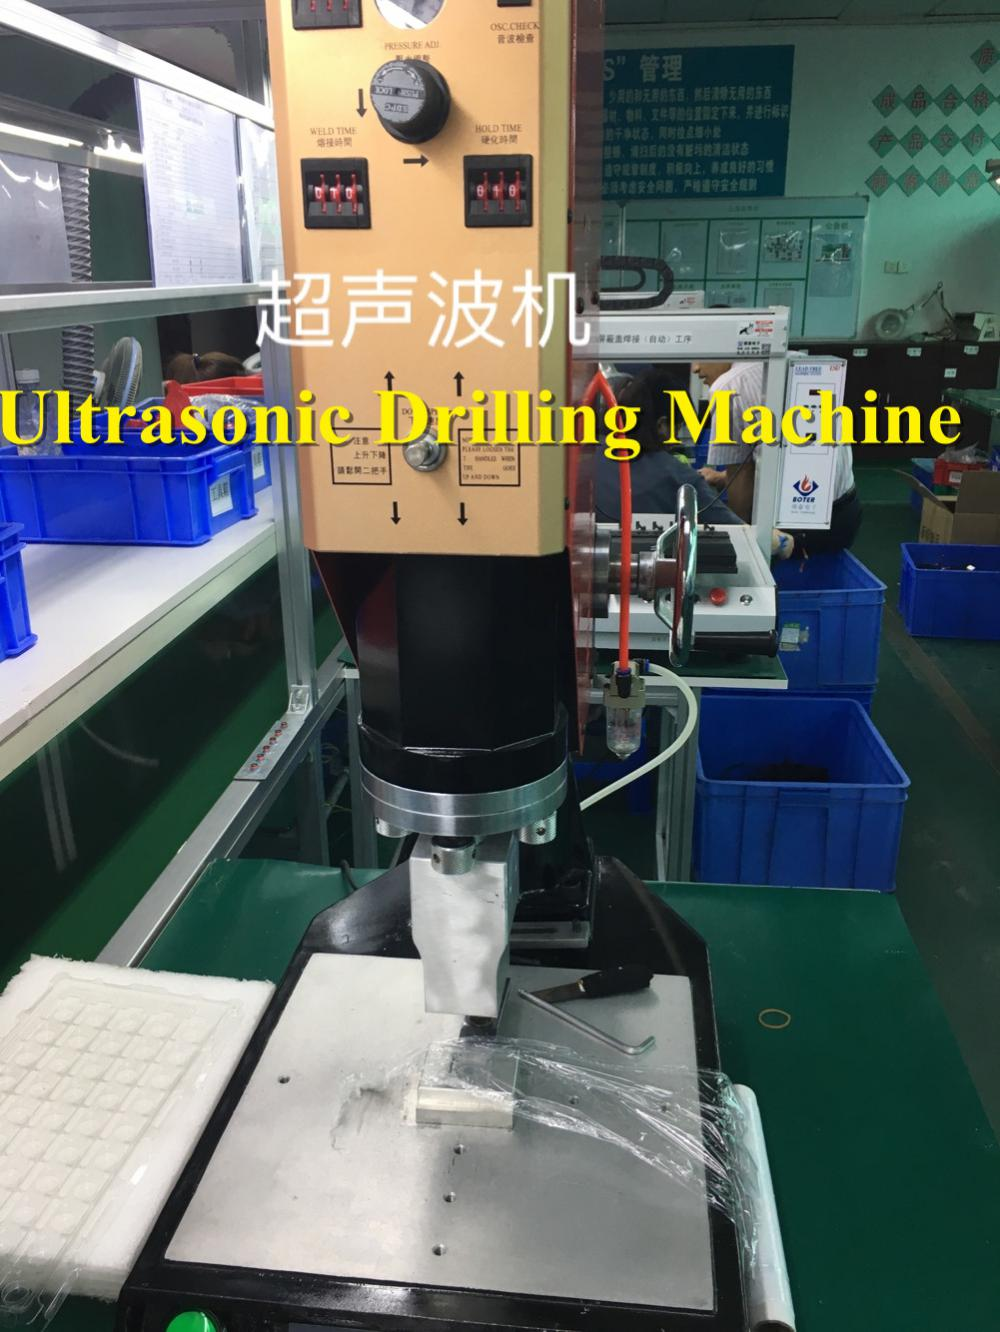 Ultrasonic Drilling Machine